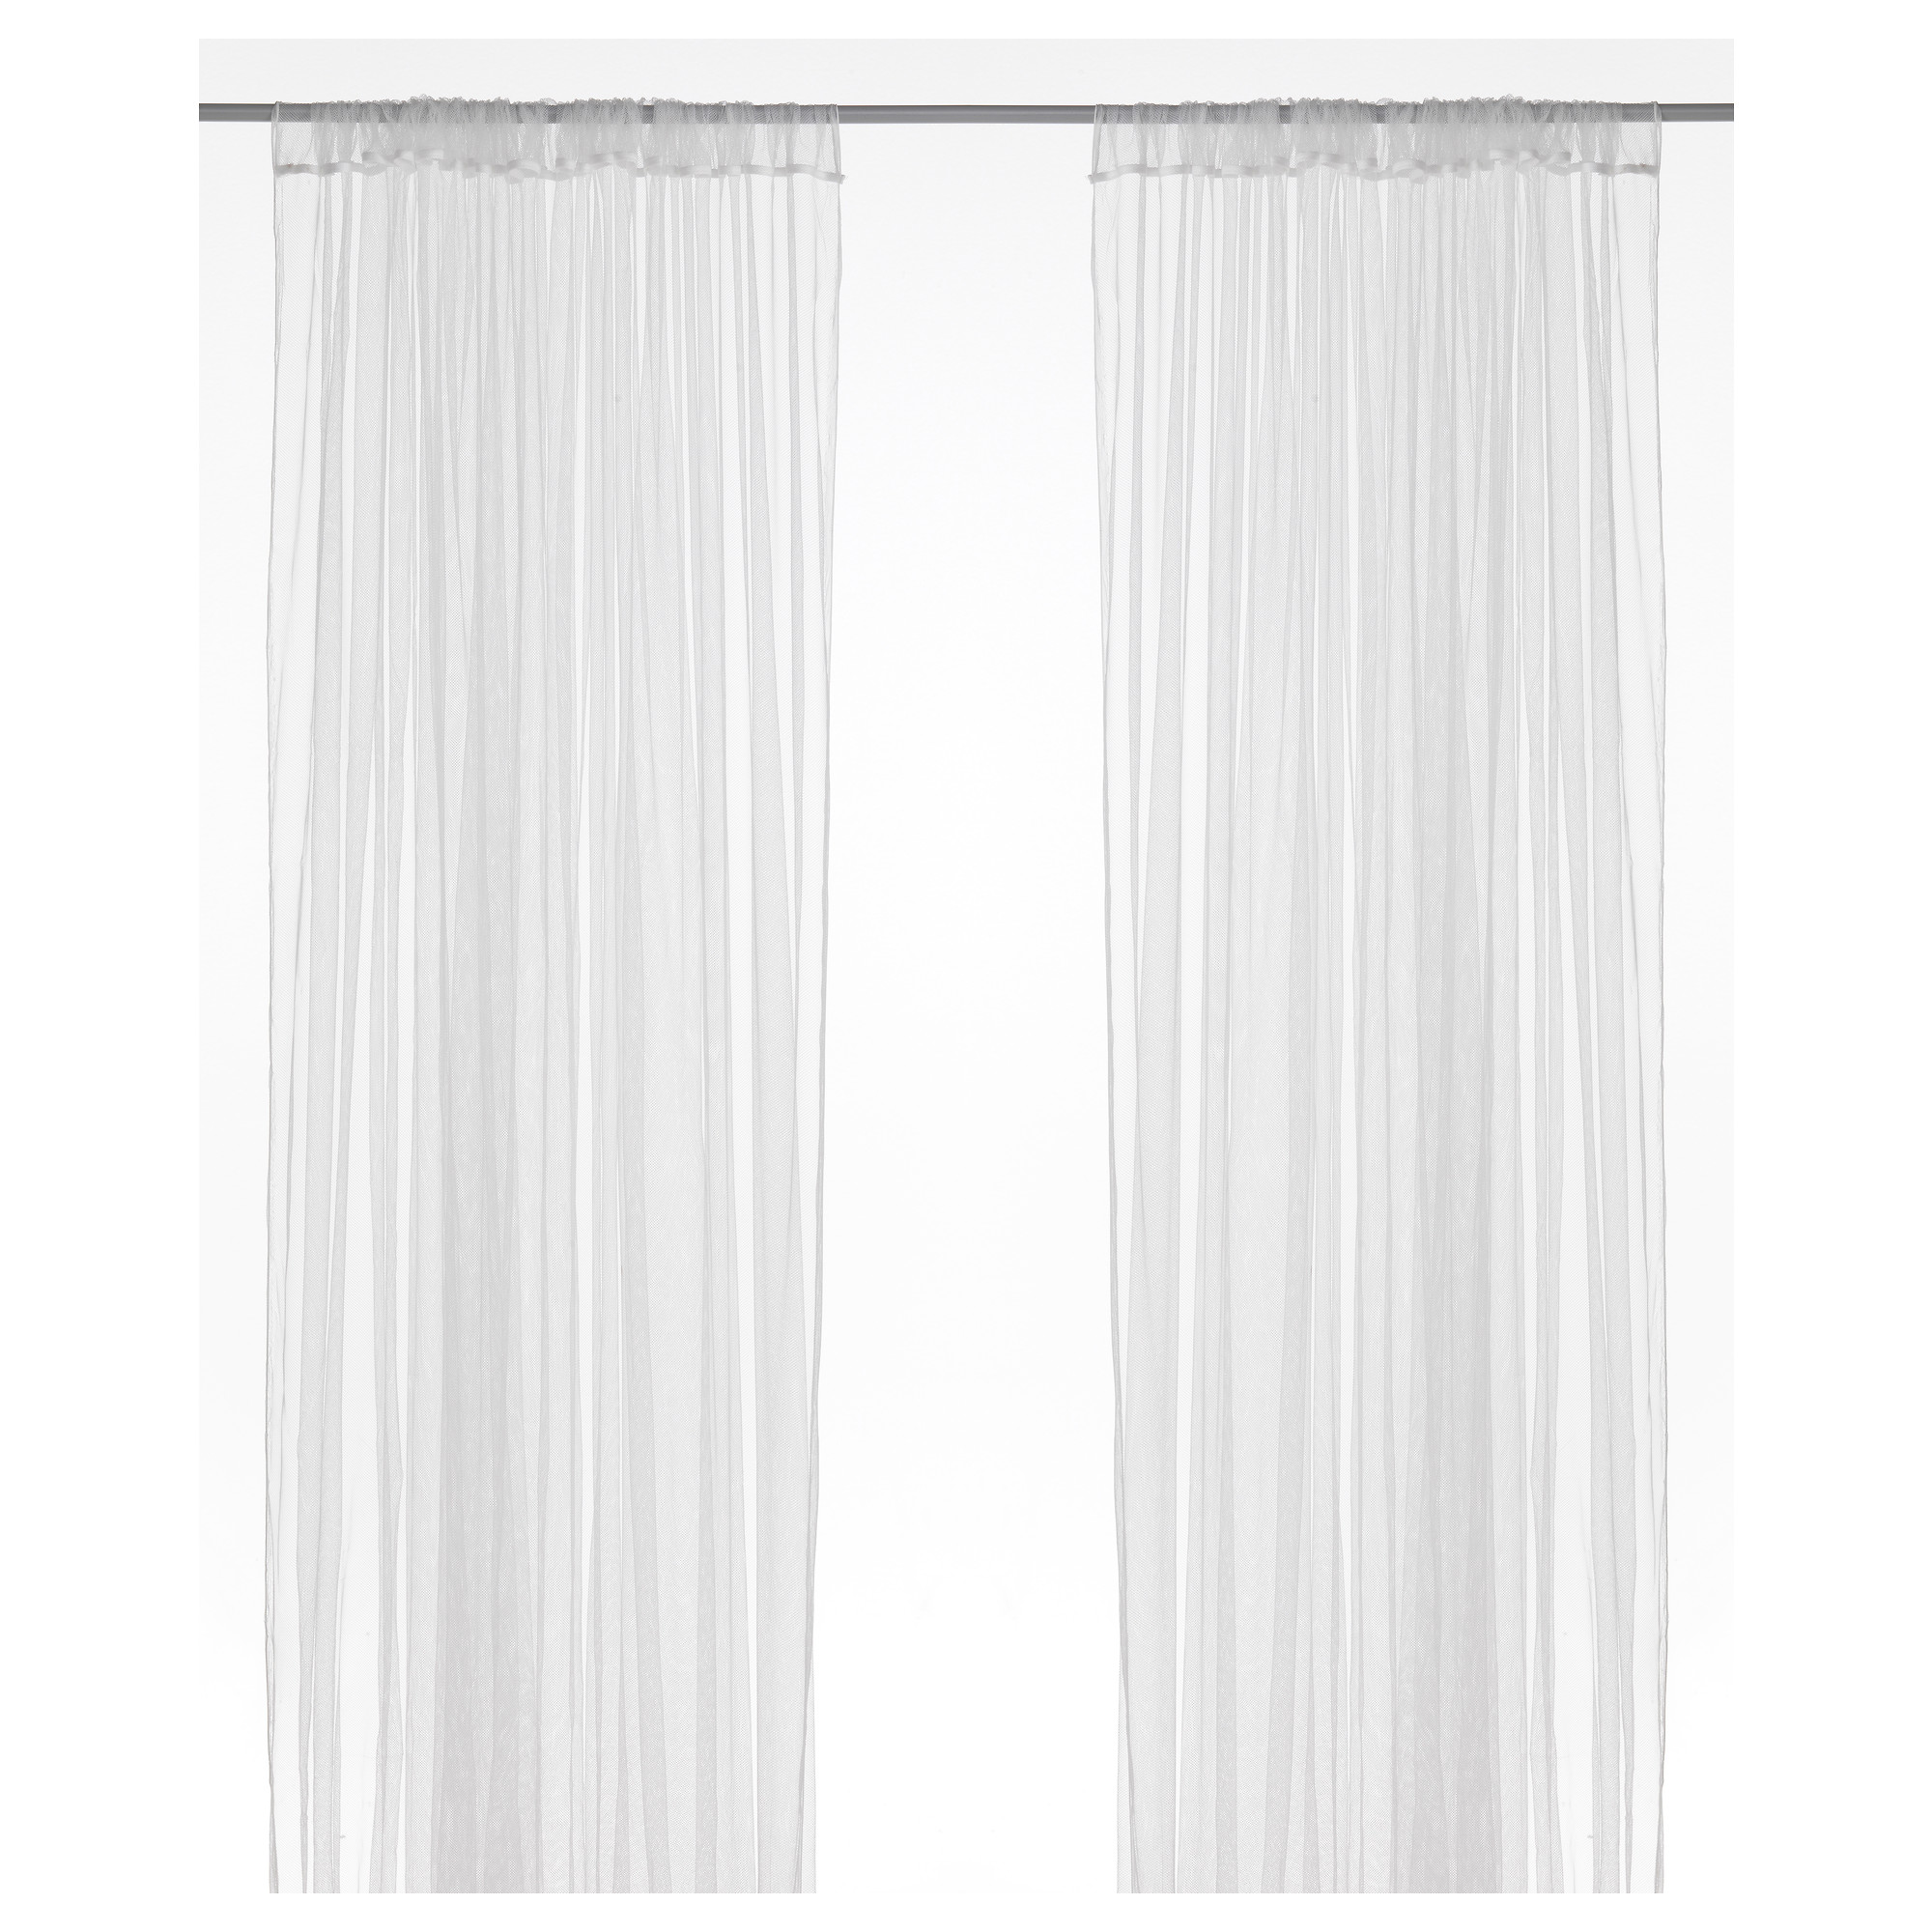 70171927 Lill Curtains - Blinds IKEA khmer in phnom penh cambodia